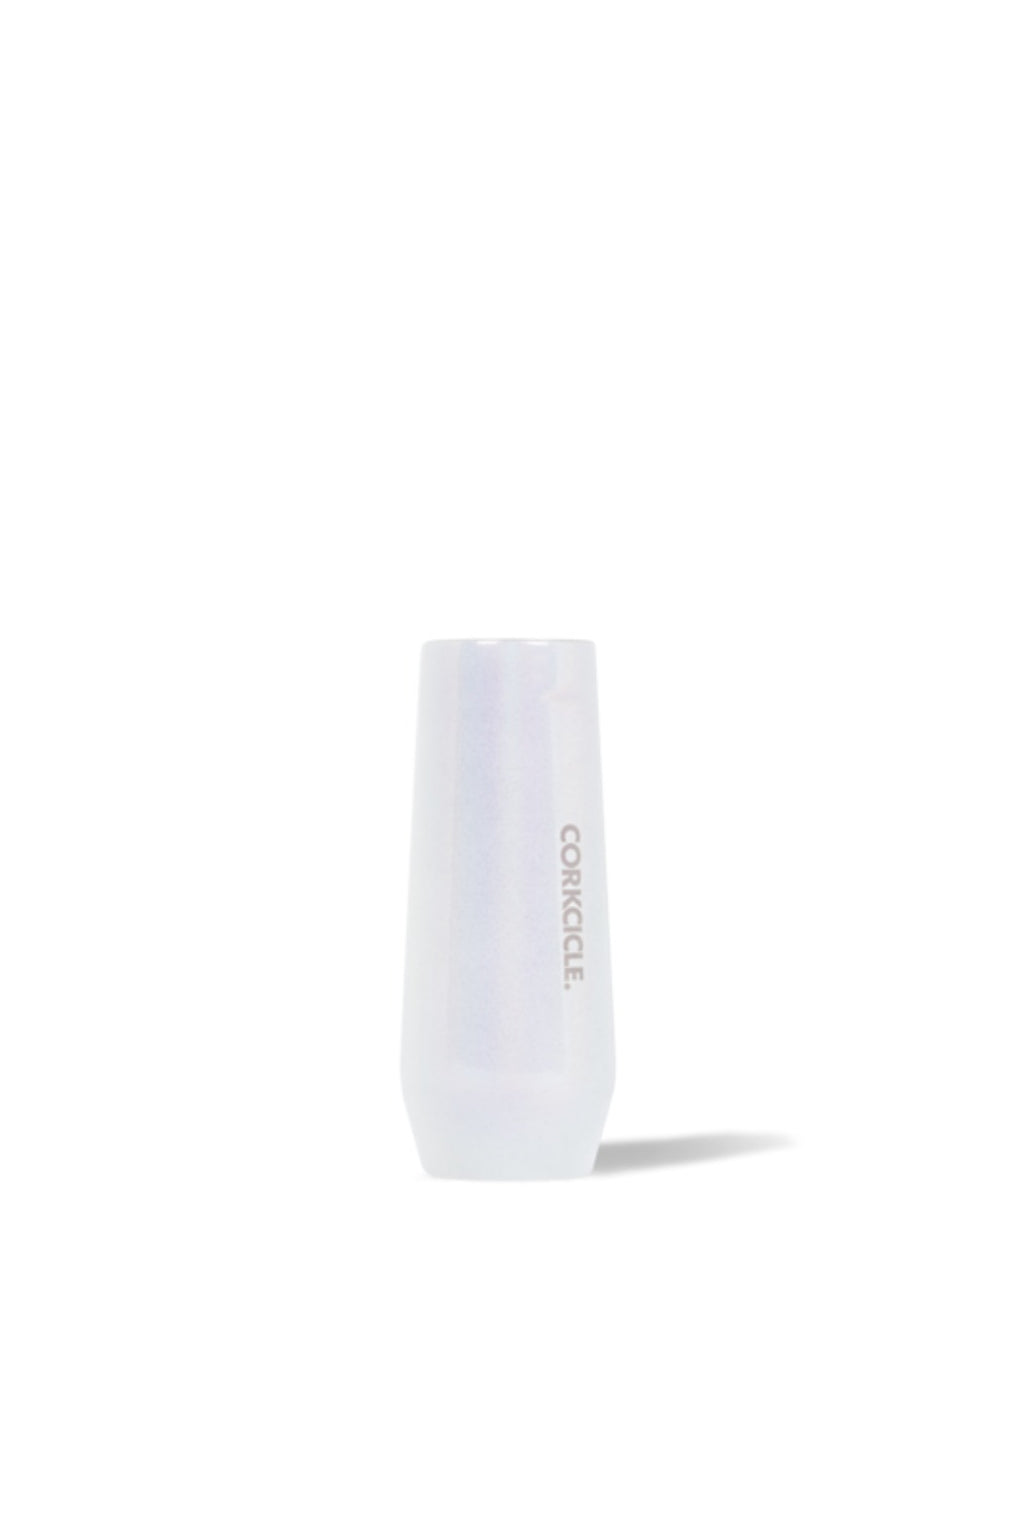 Corkcicle 8 oz. Champagne Flute in Unicorn Magic